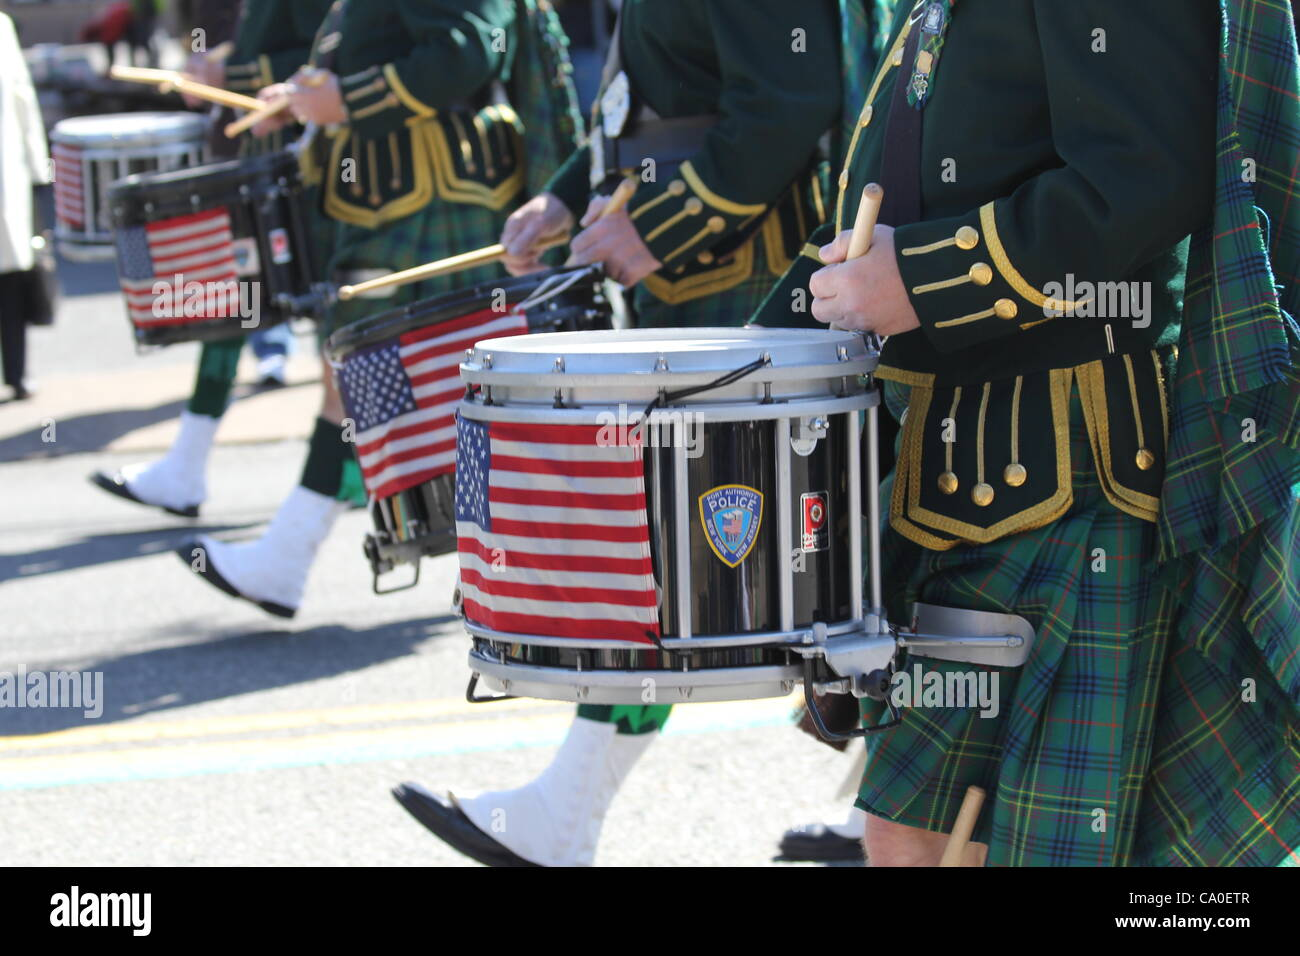 St.Patrick's Day 2012 West Orange, New Jersey USA Mars 11th, 2012 Banque D'Images